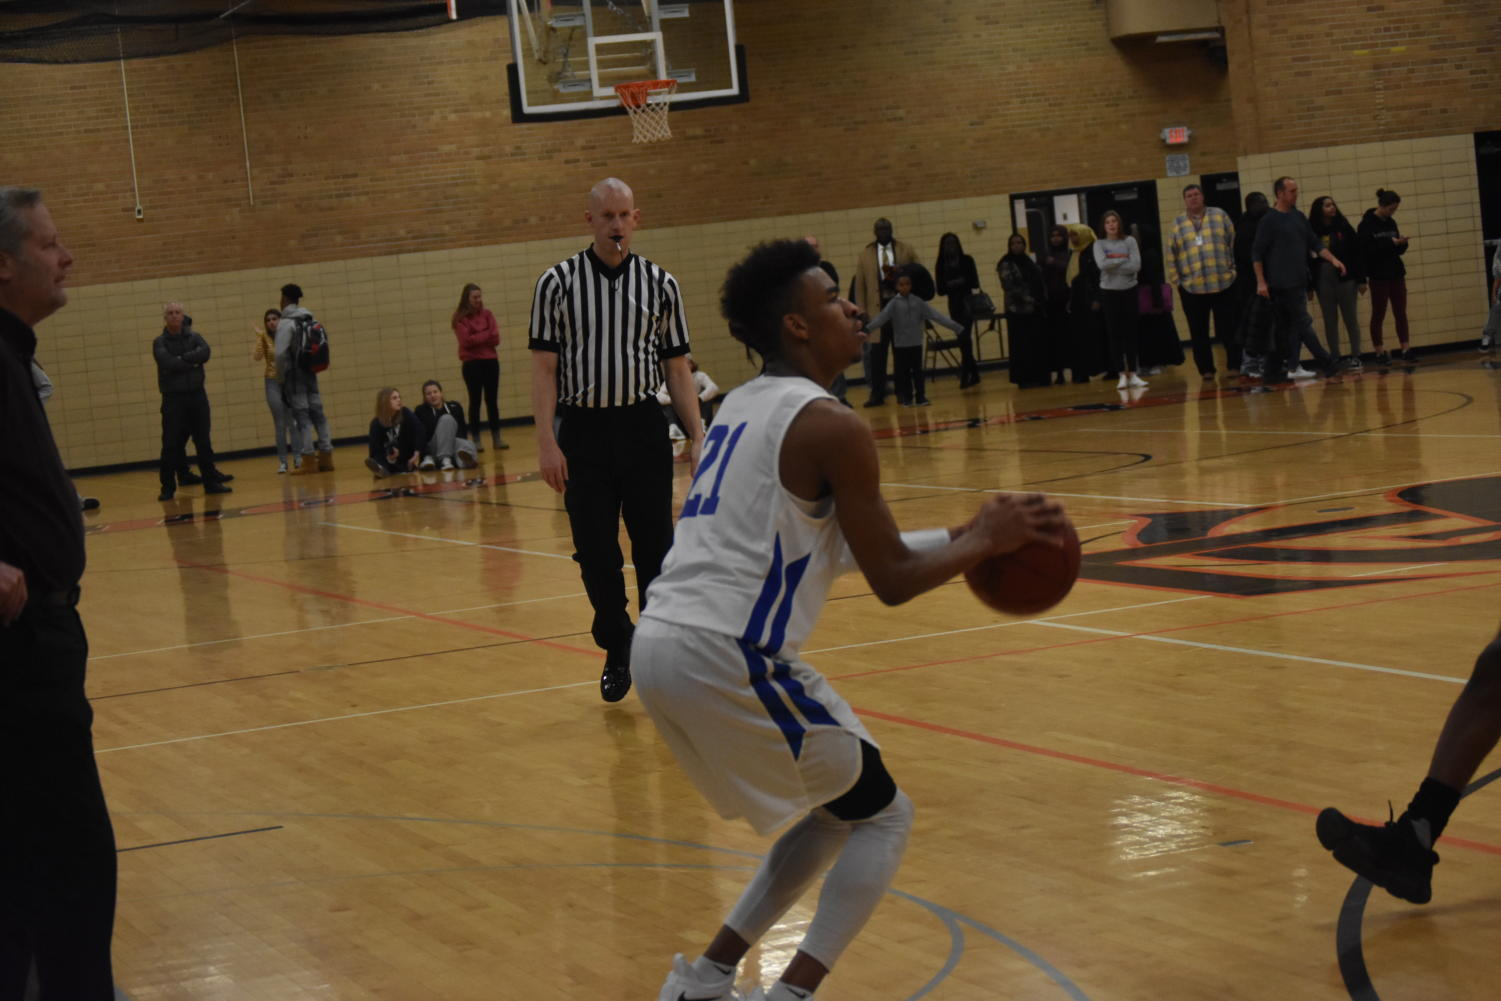 Anthony Davis, senior, pulls up for three pointer against Orioles.